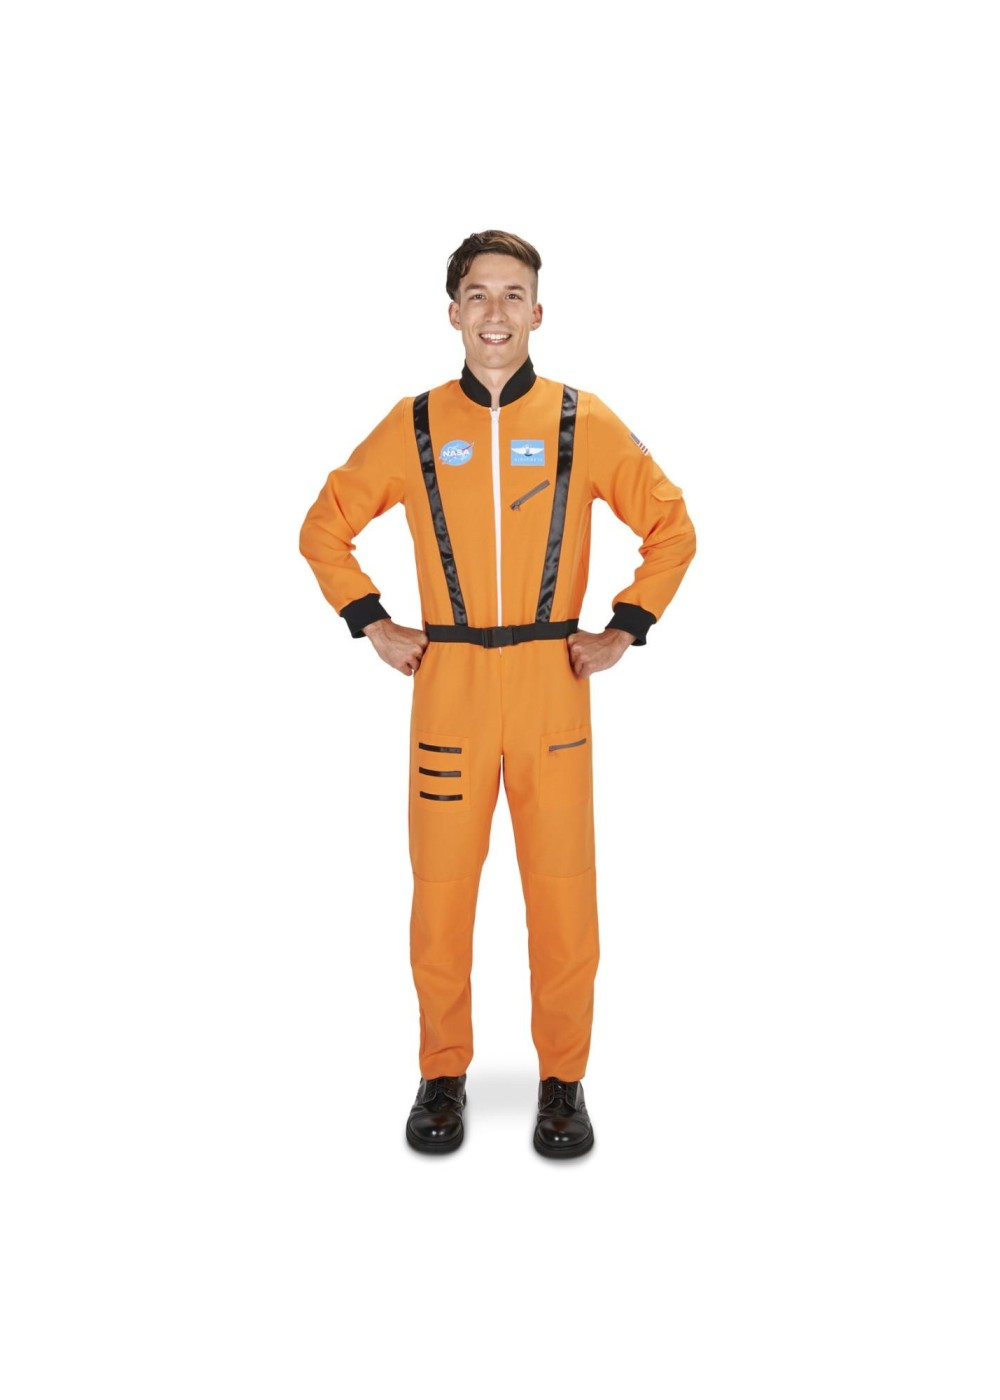 Nasa Astronaut Mens Costume